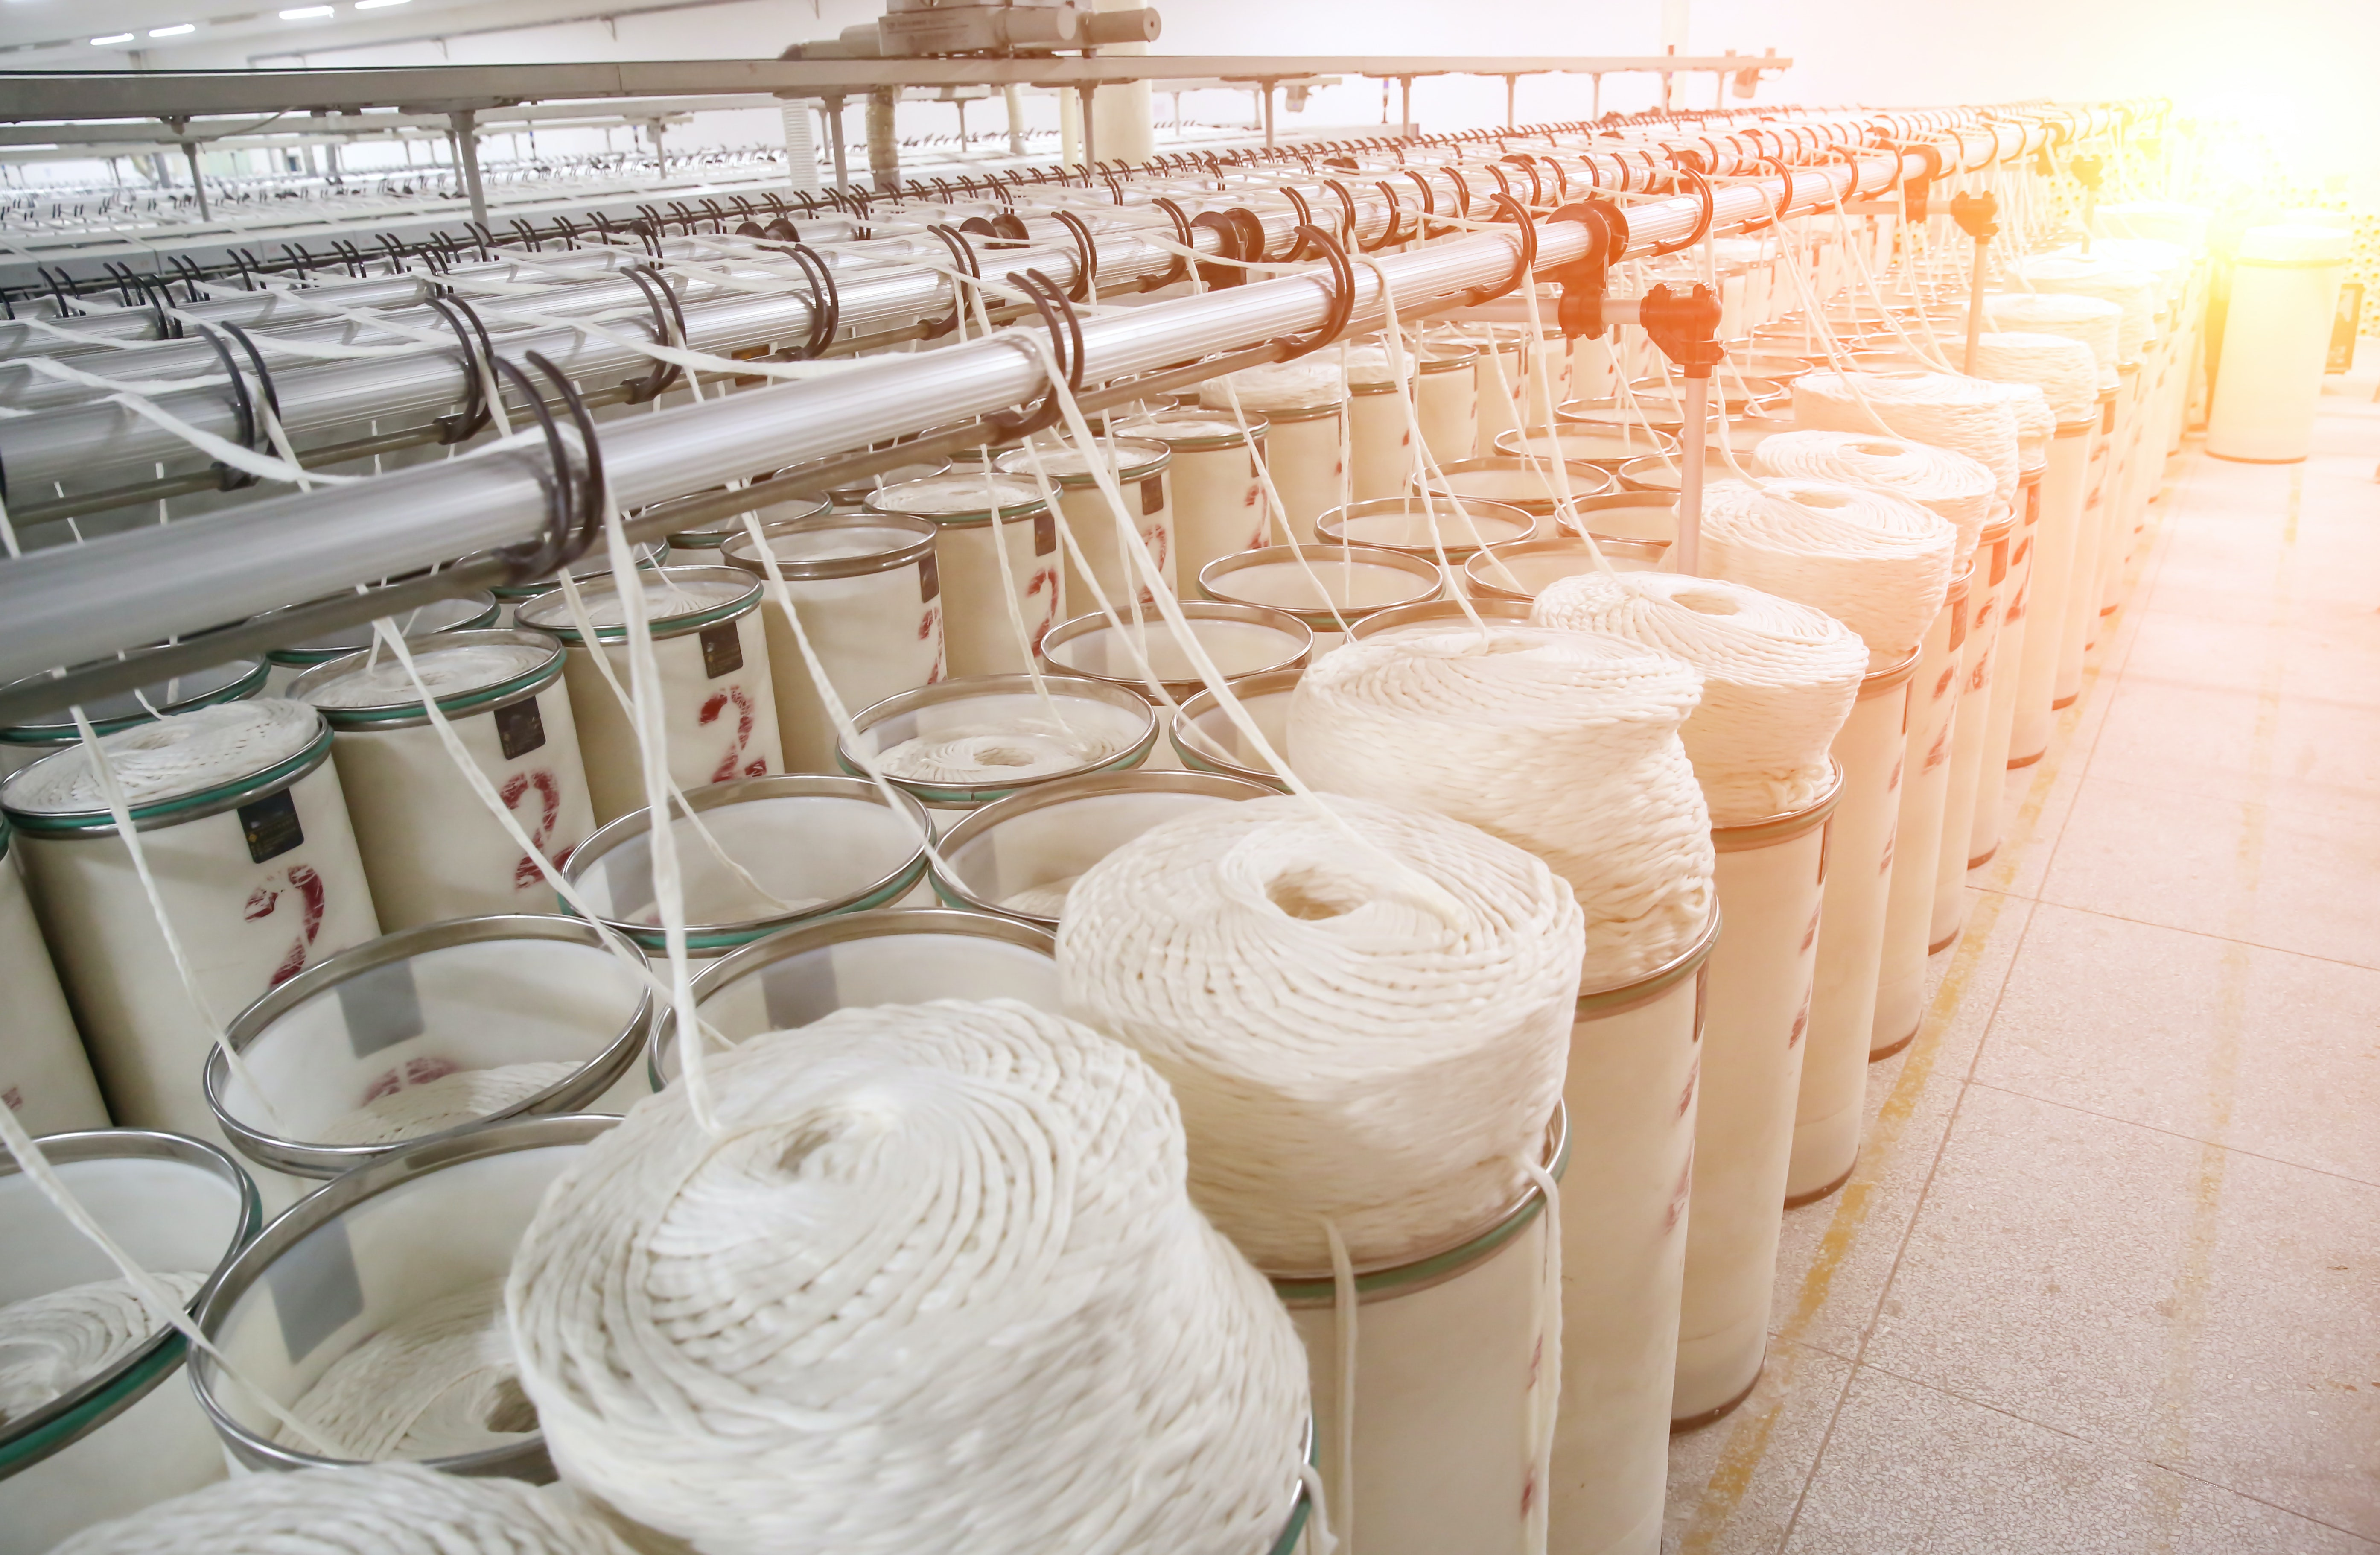 A textile factory | Source: Shutterstock